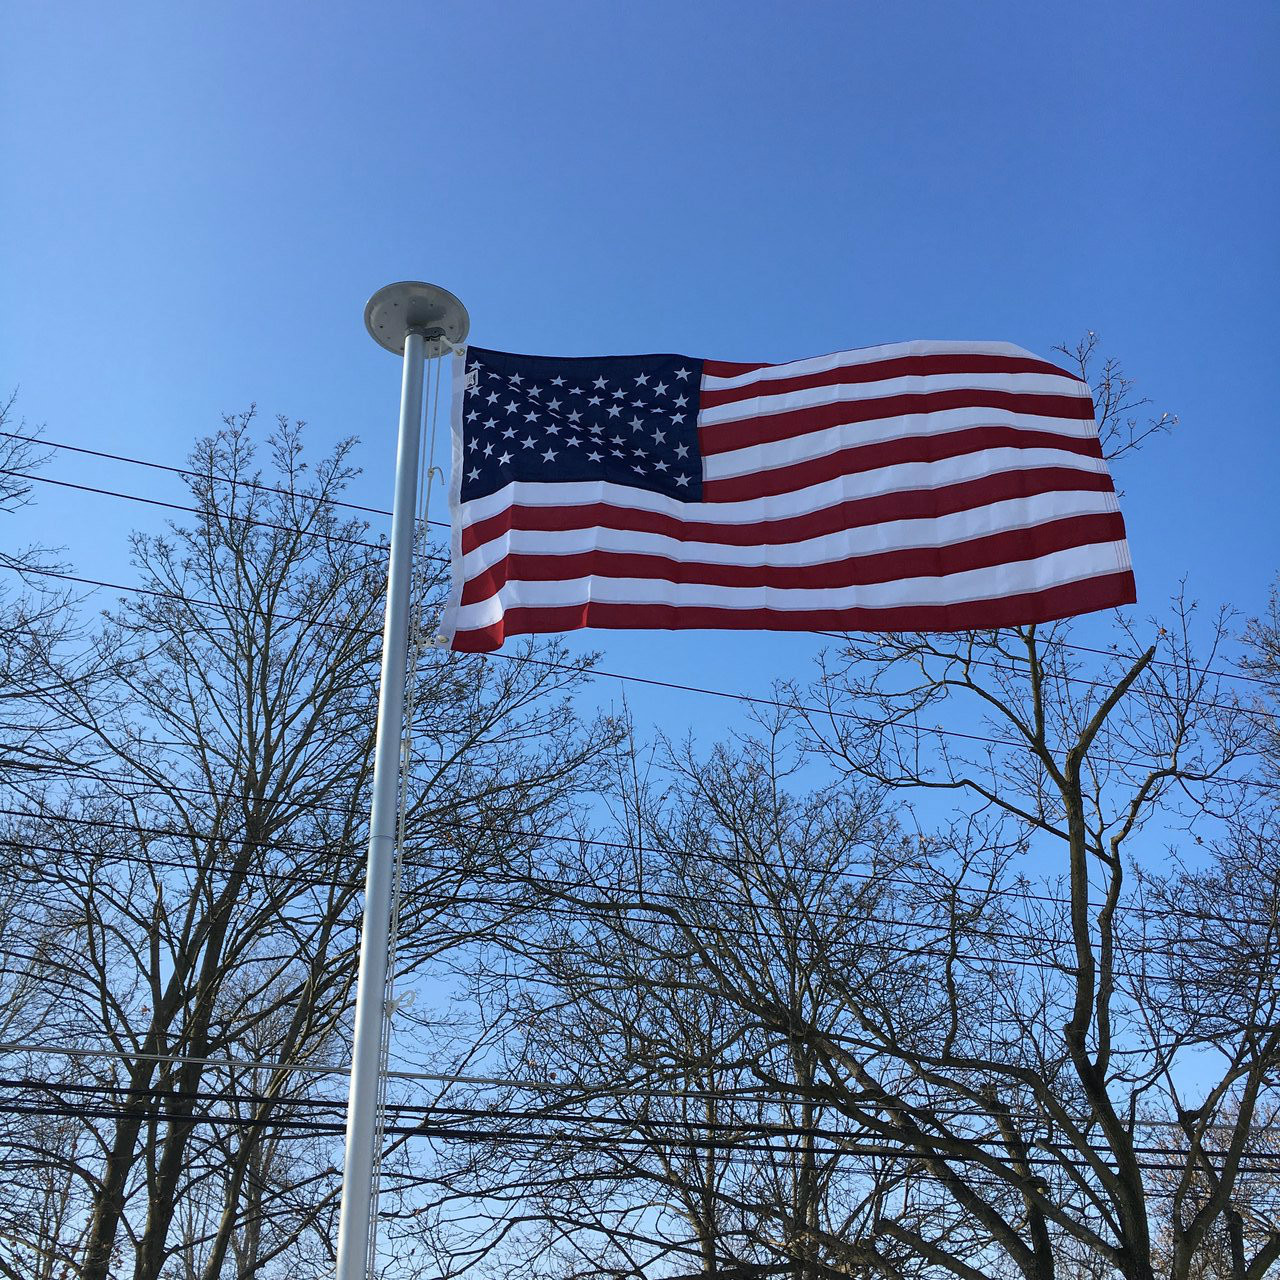 Poly-Max American Flag flying high and proud. 3'x5' on 21